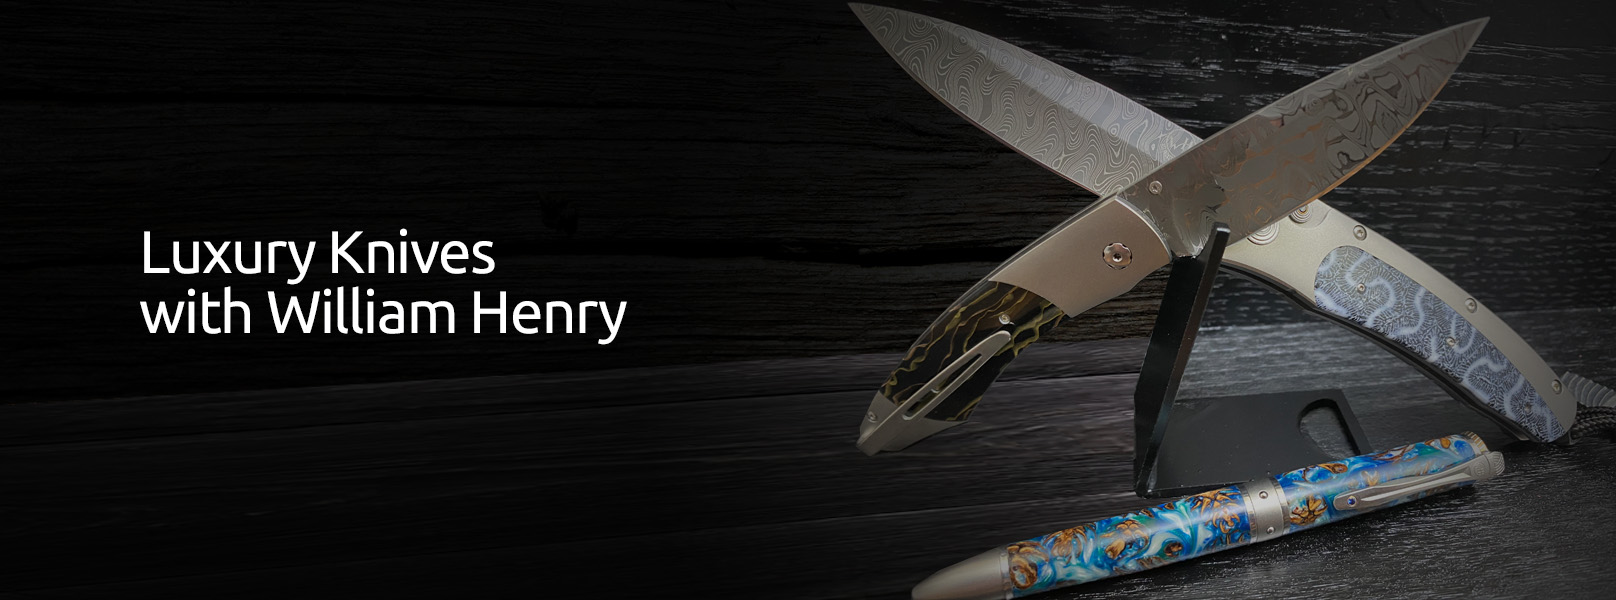 Luxury Knives